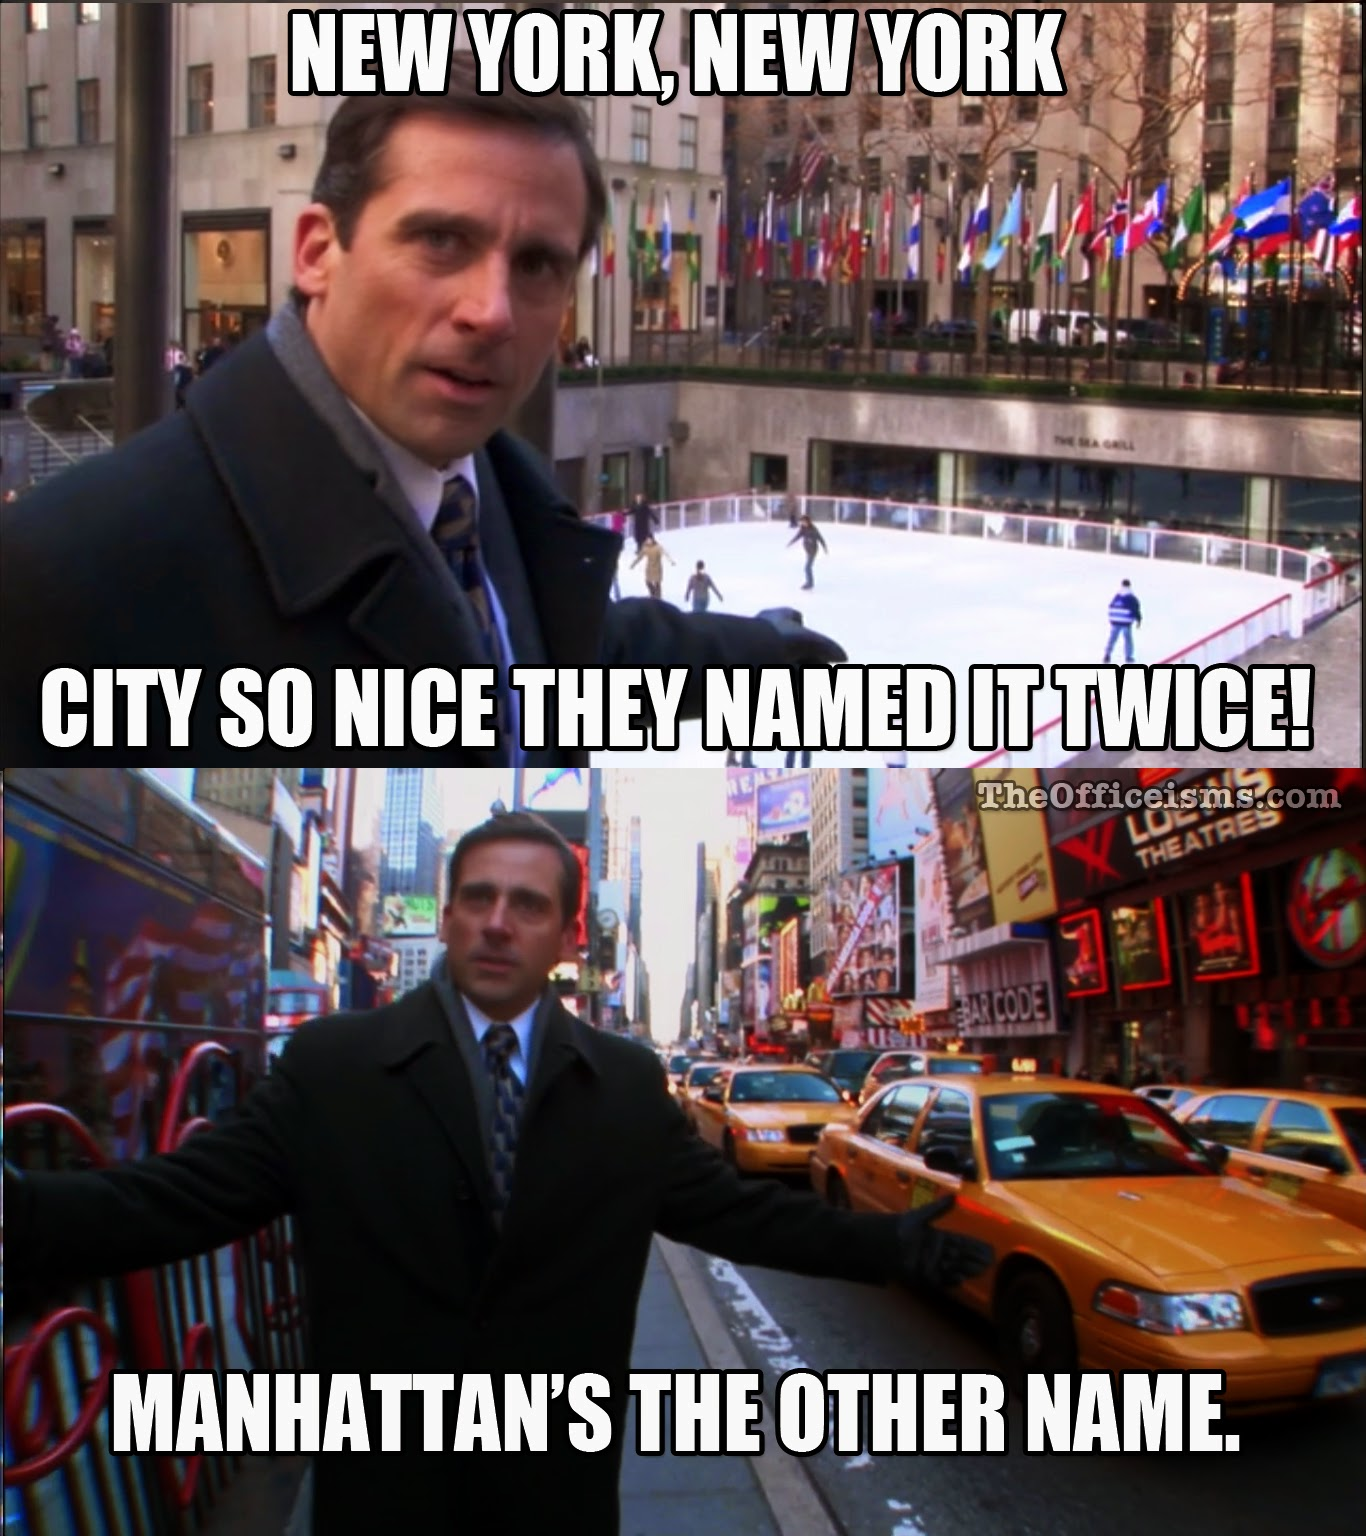 michael scott quote the office meme new york manhattan - The Office Christmas Quotes